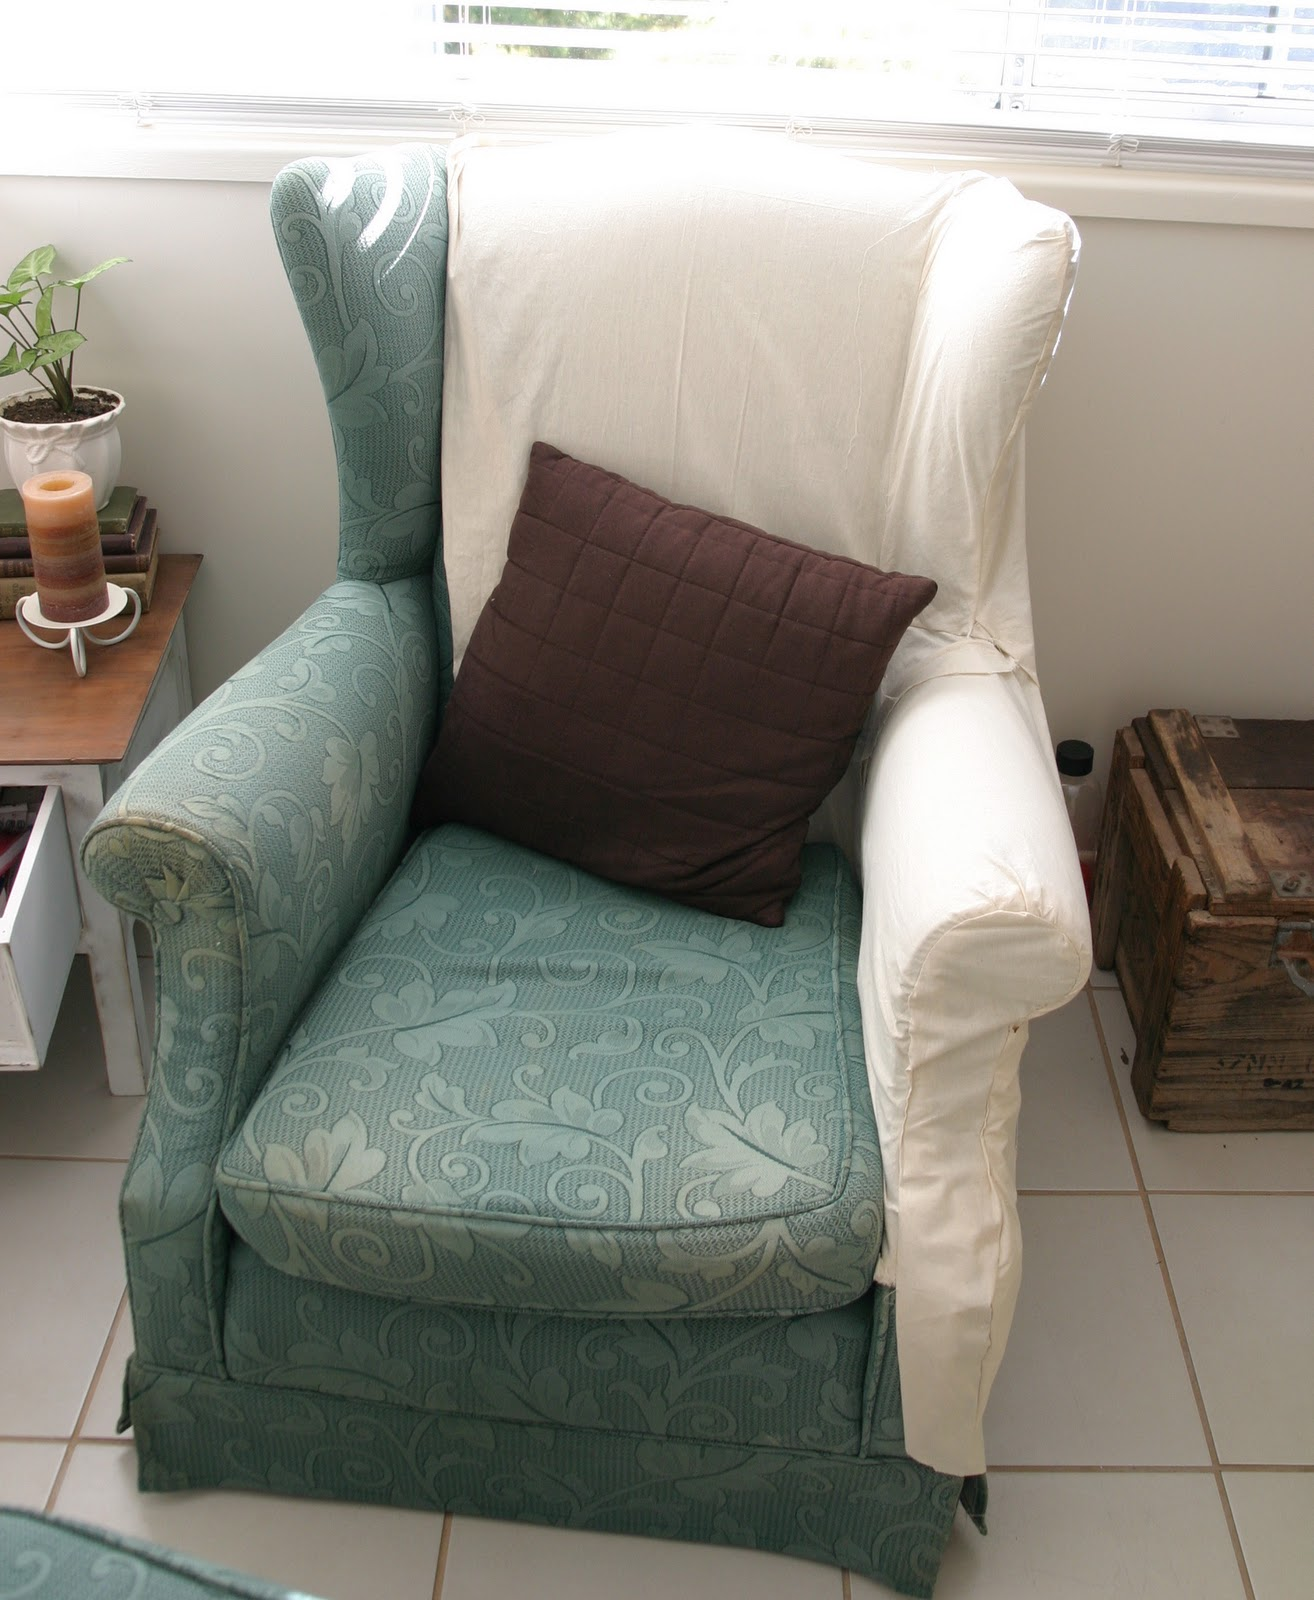 The Whimsical Wife Wingback Chair Slipcovers At long last